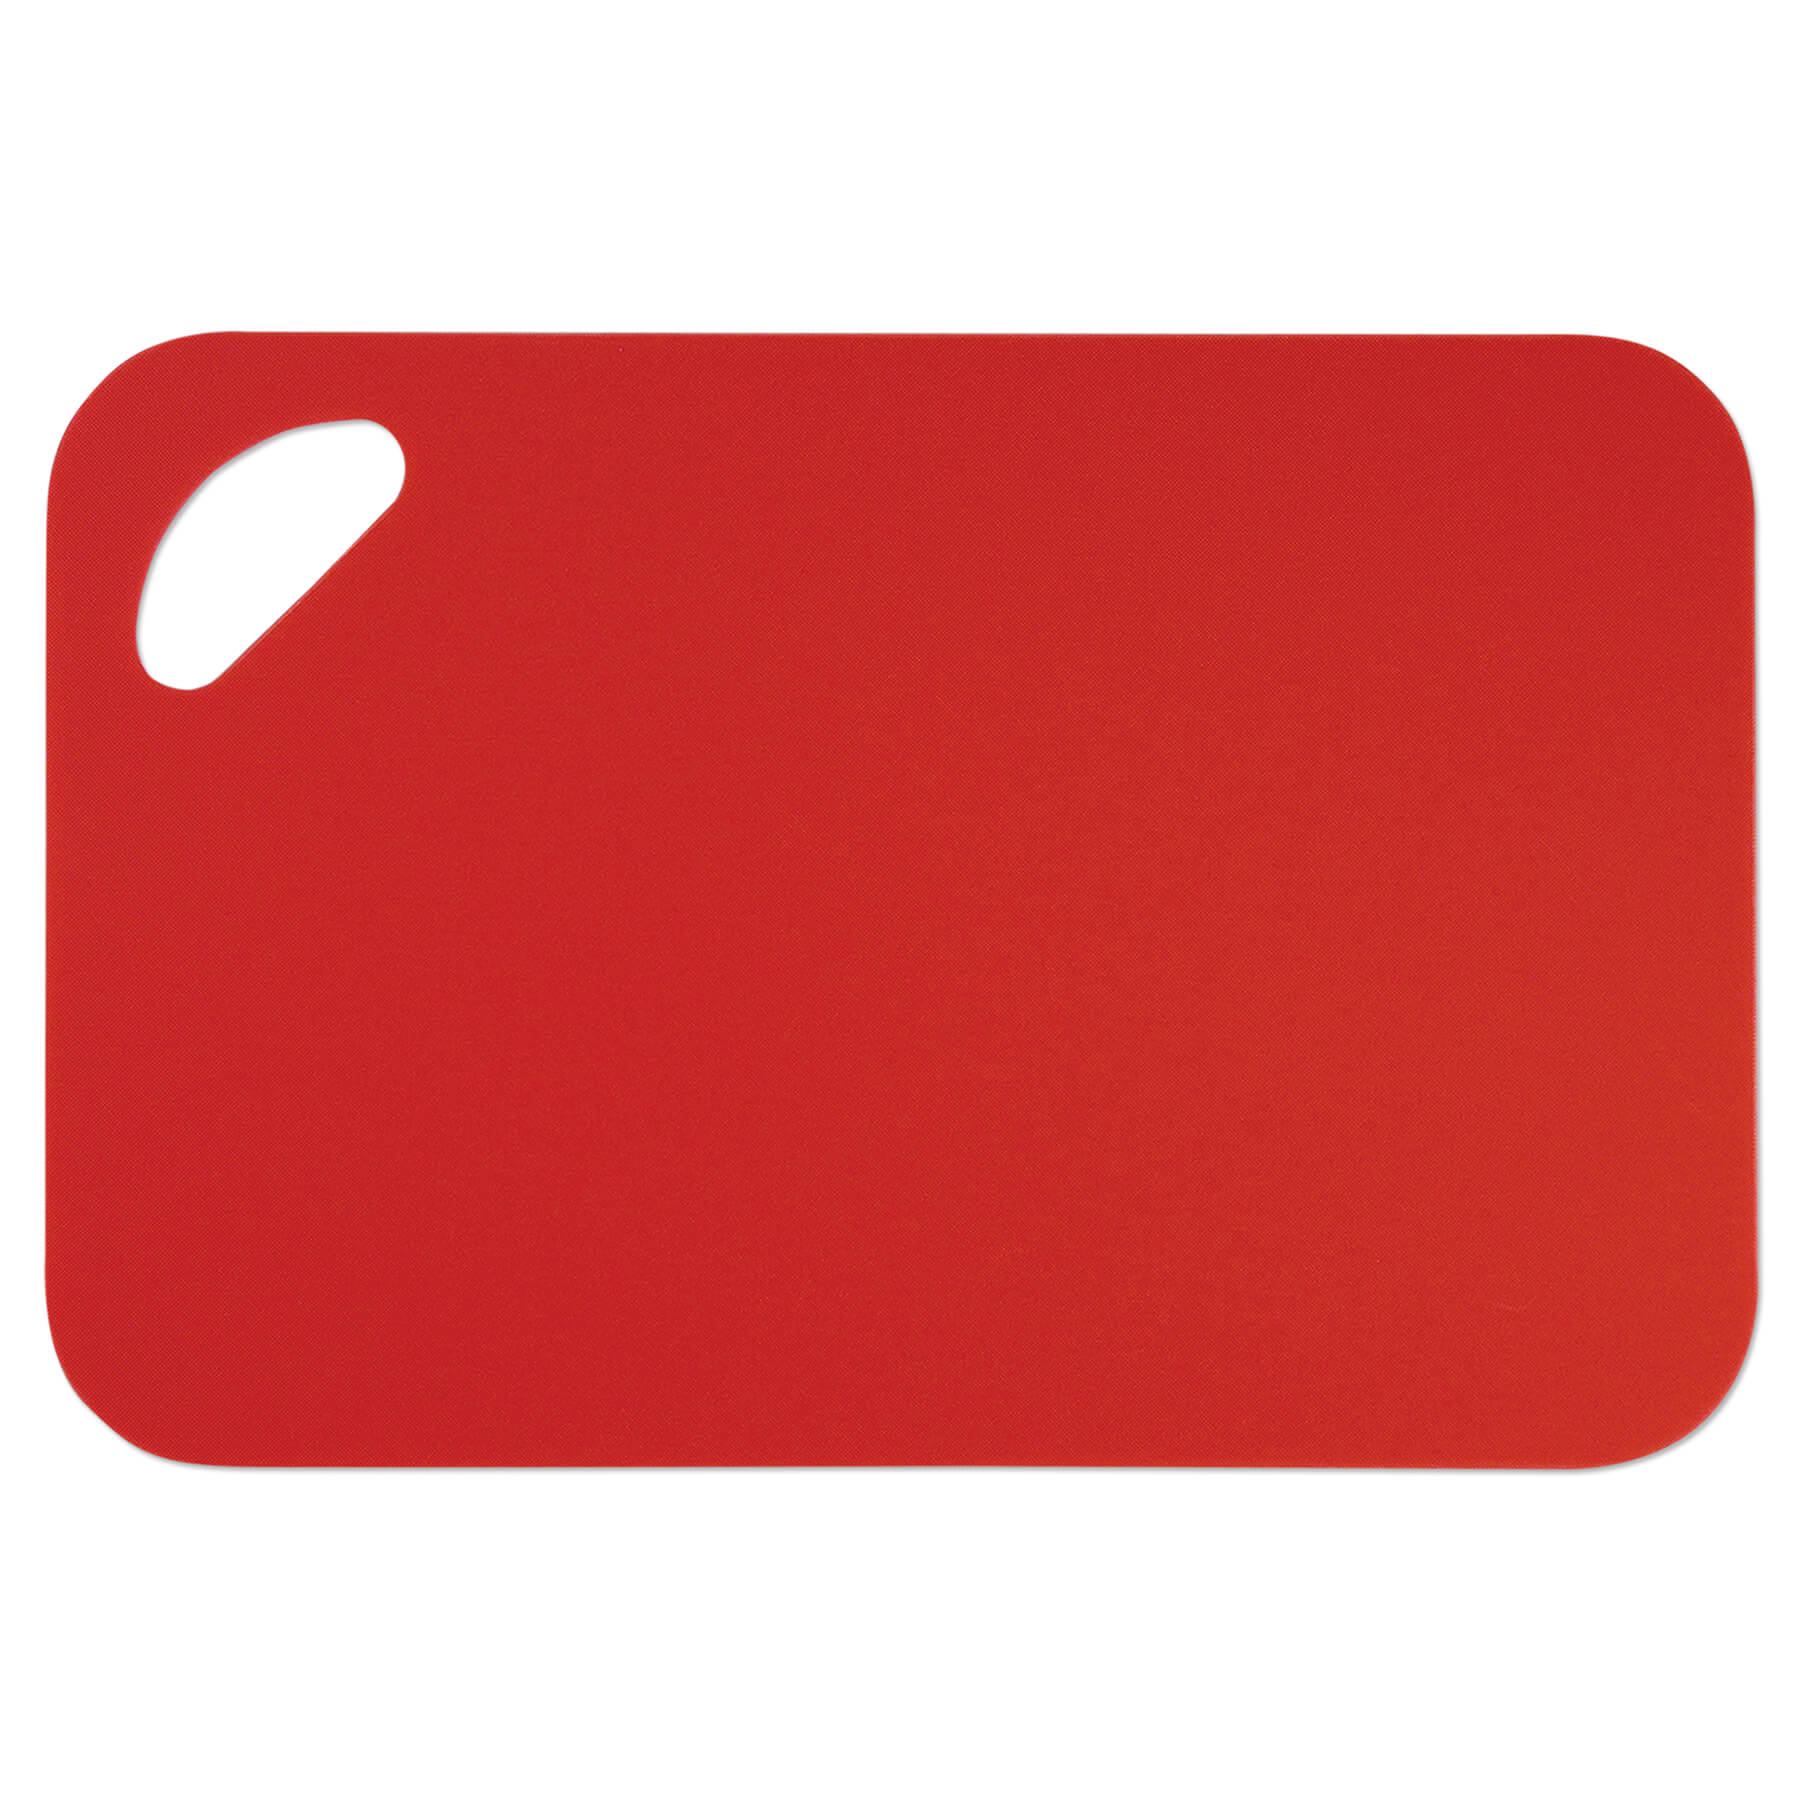 Cutting Board Red